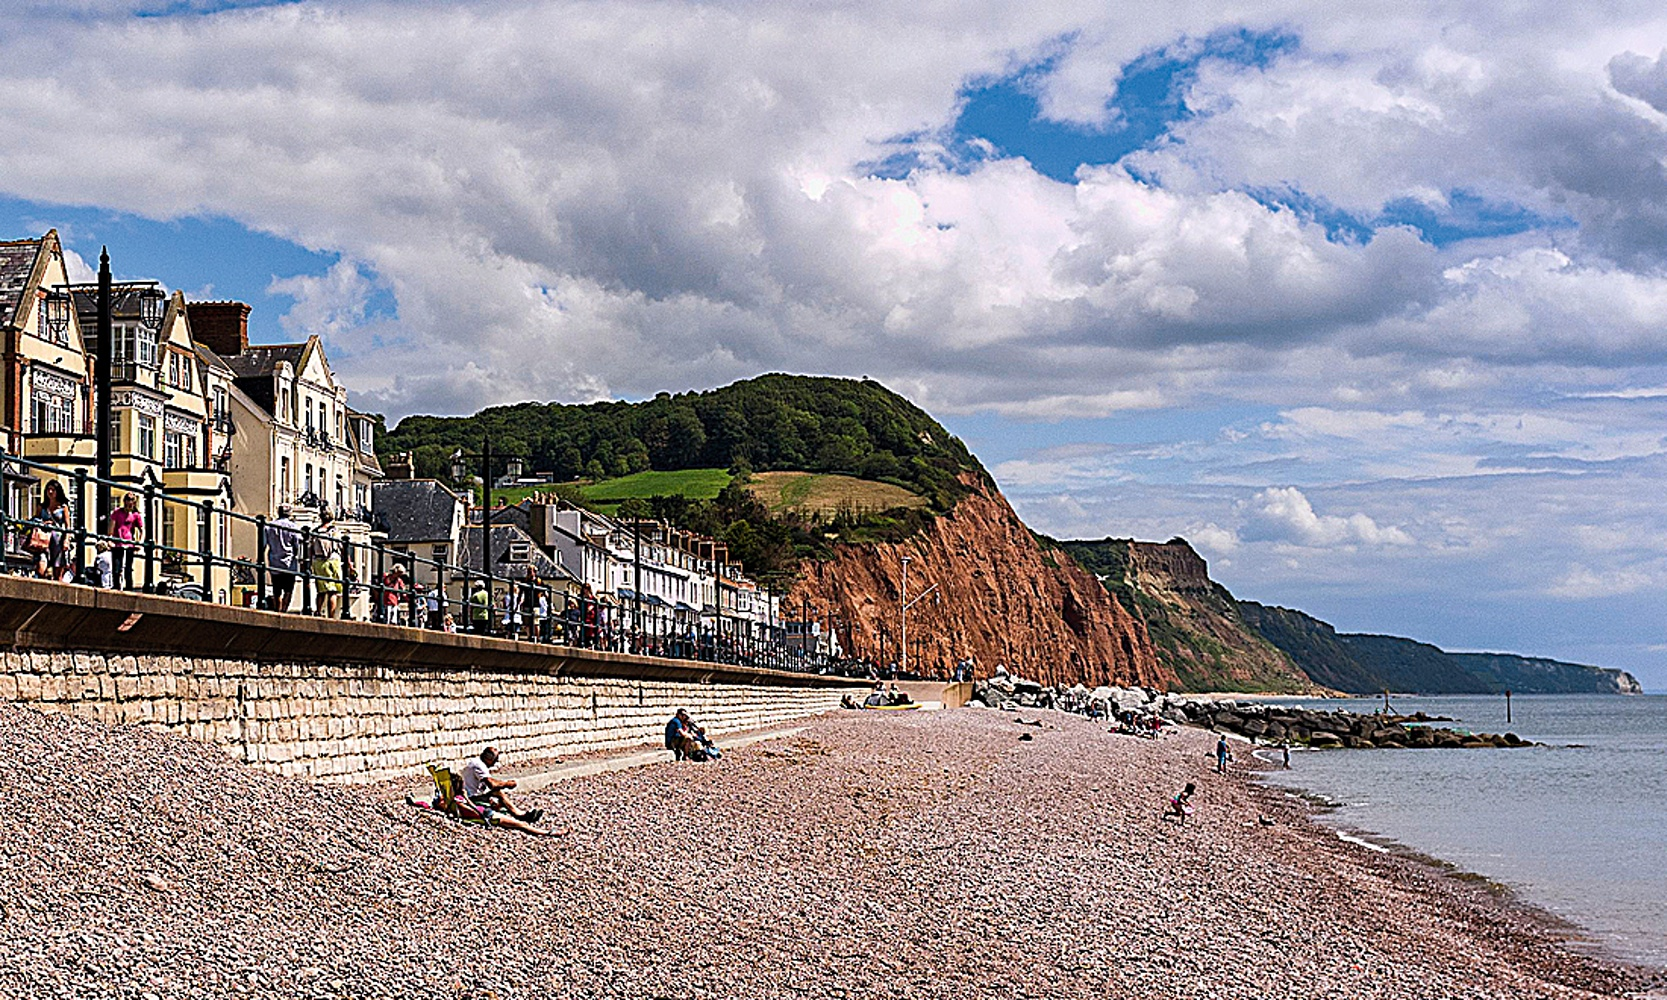 Let's move to Sidmouth, Devon   Money   The Guardian